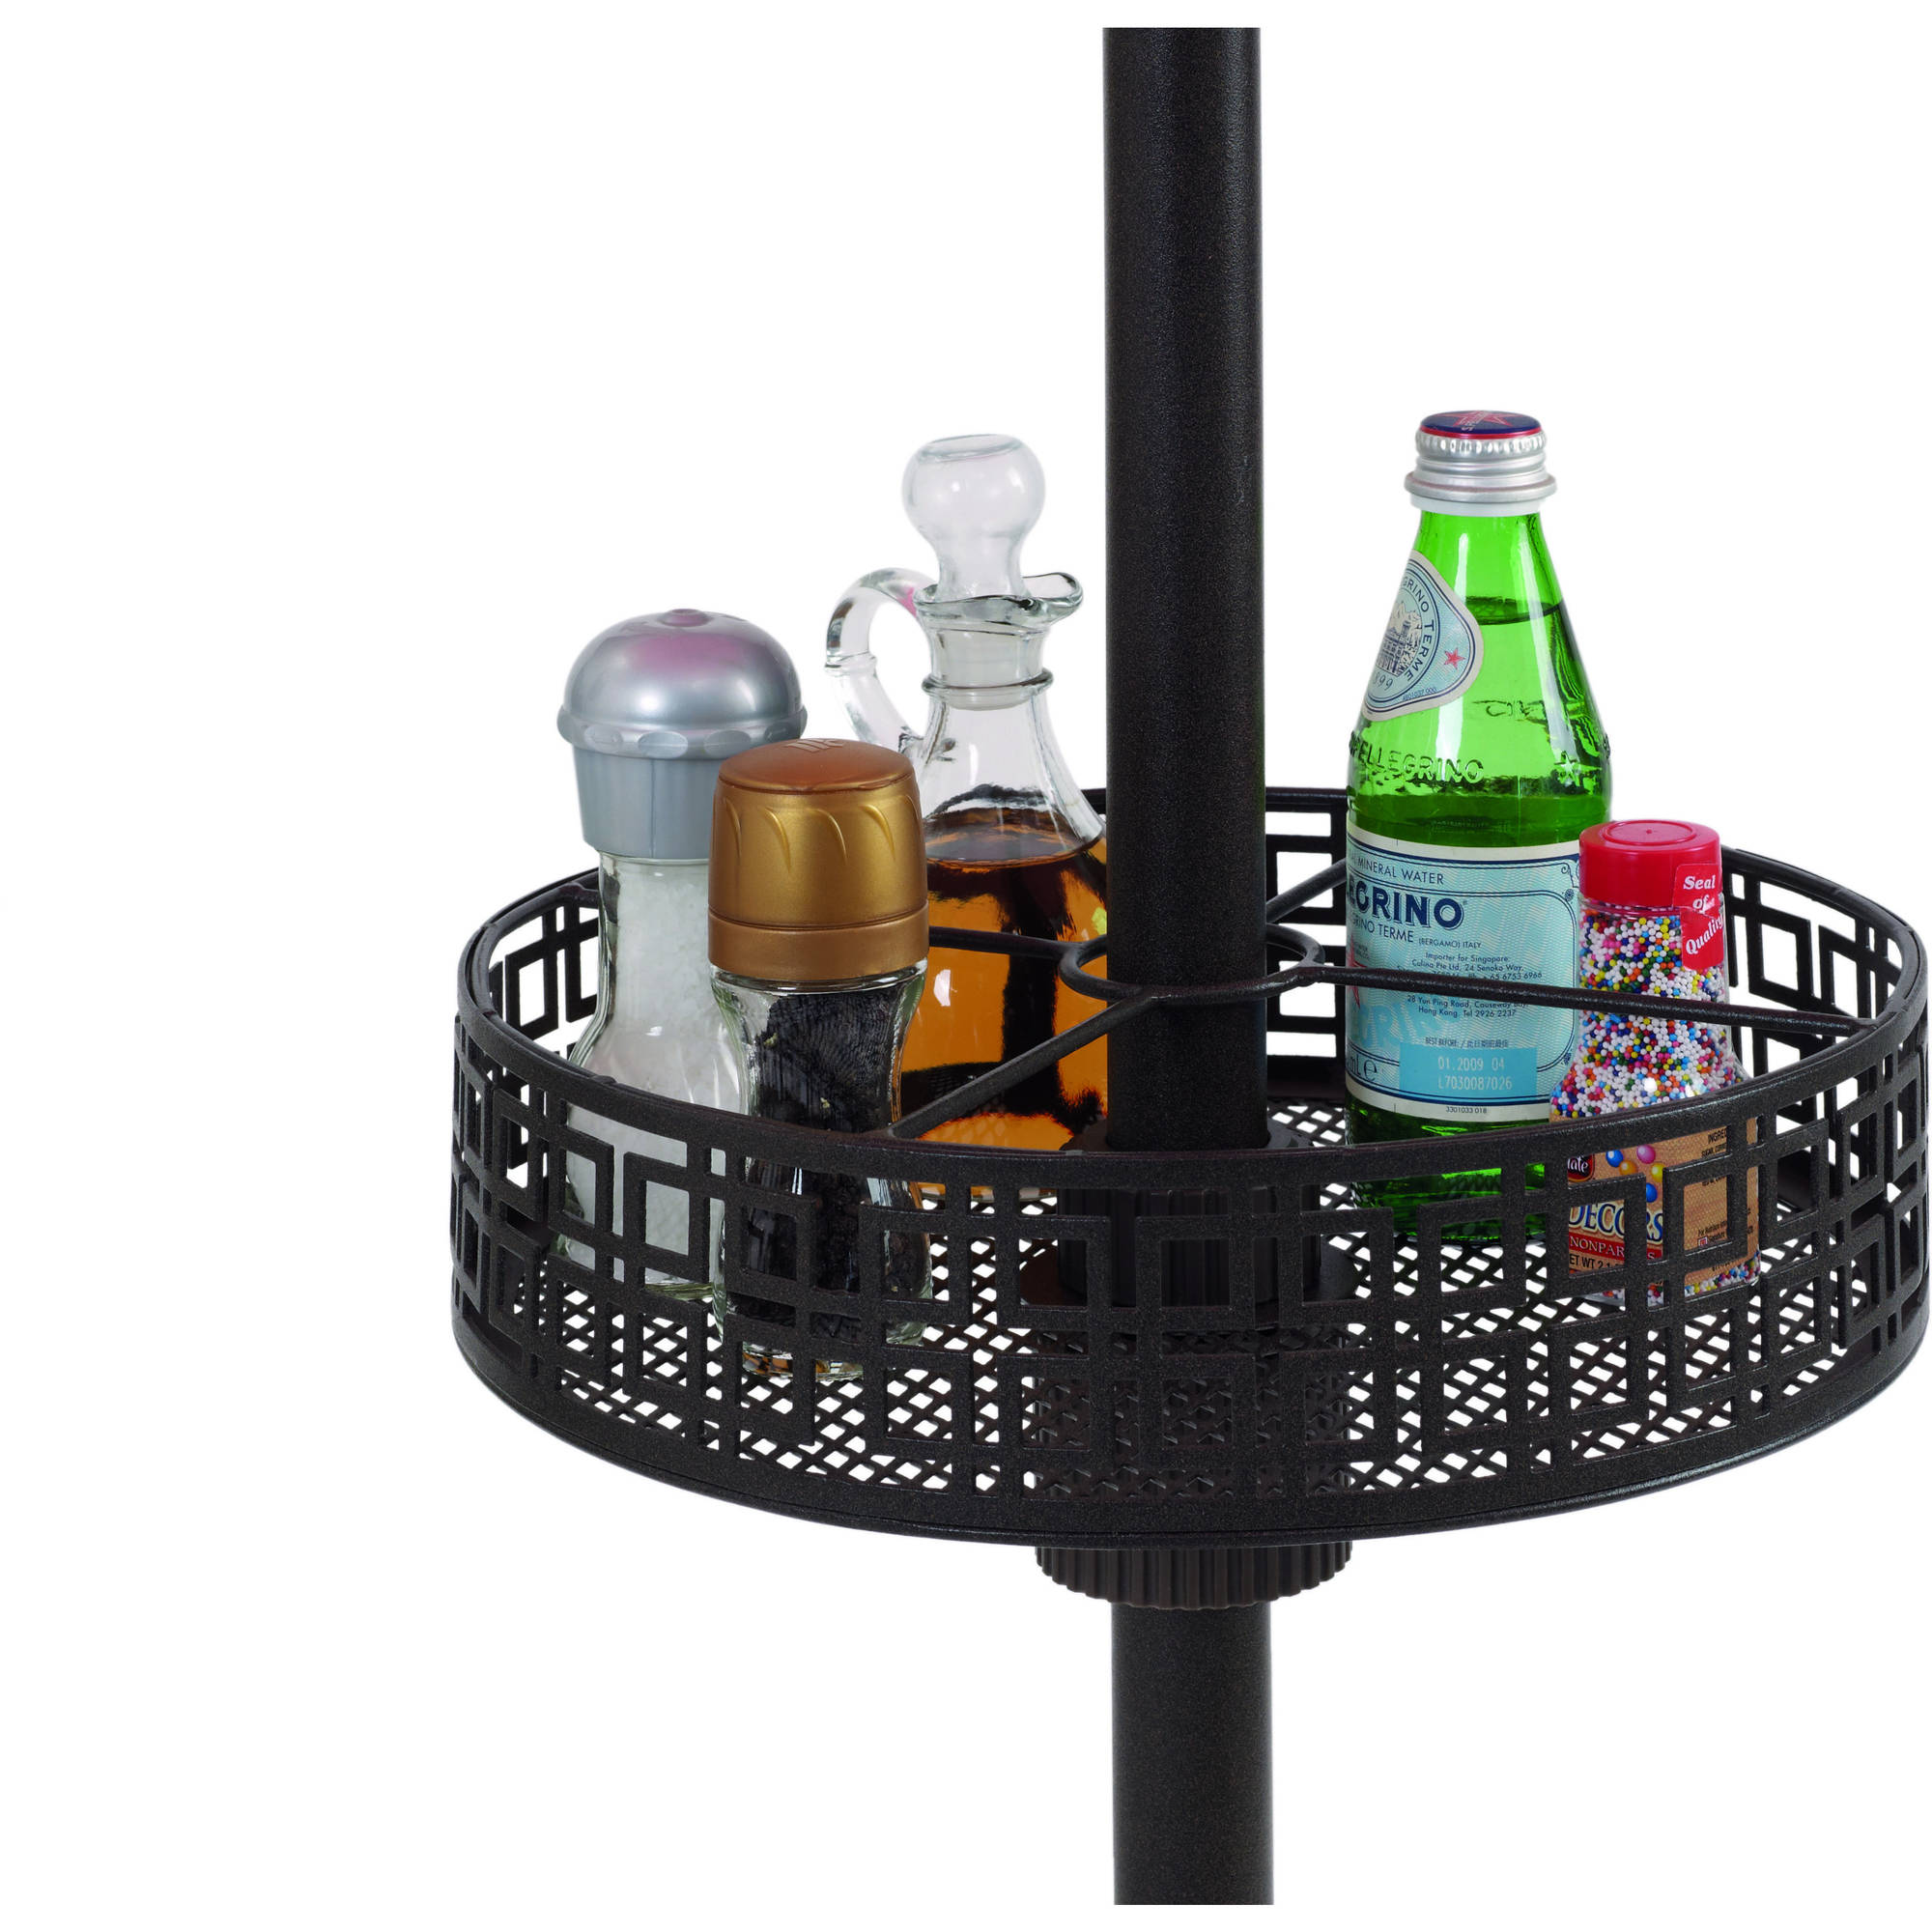 Mainstays Patio Umbrella Basket - Walmart.com